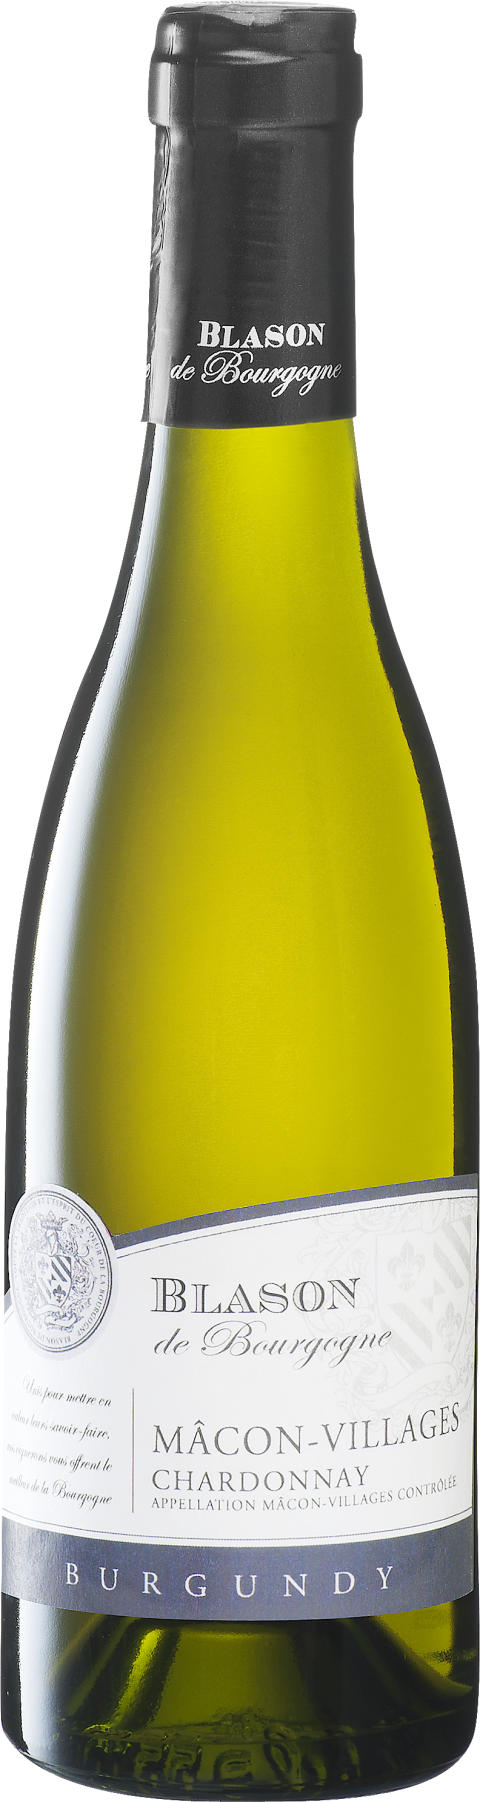 Mâcon-Villages Chardonnay 375ml